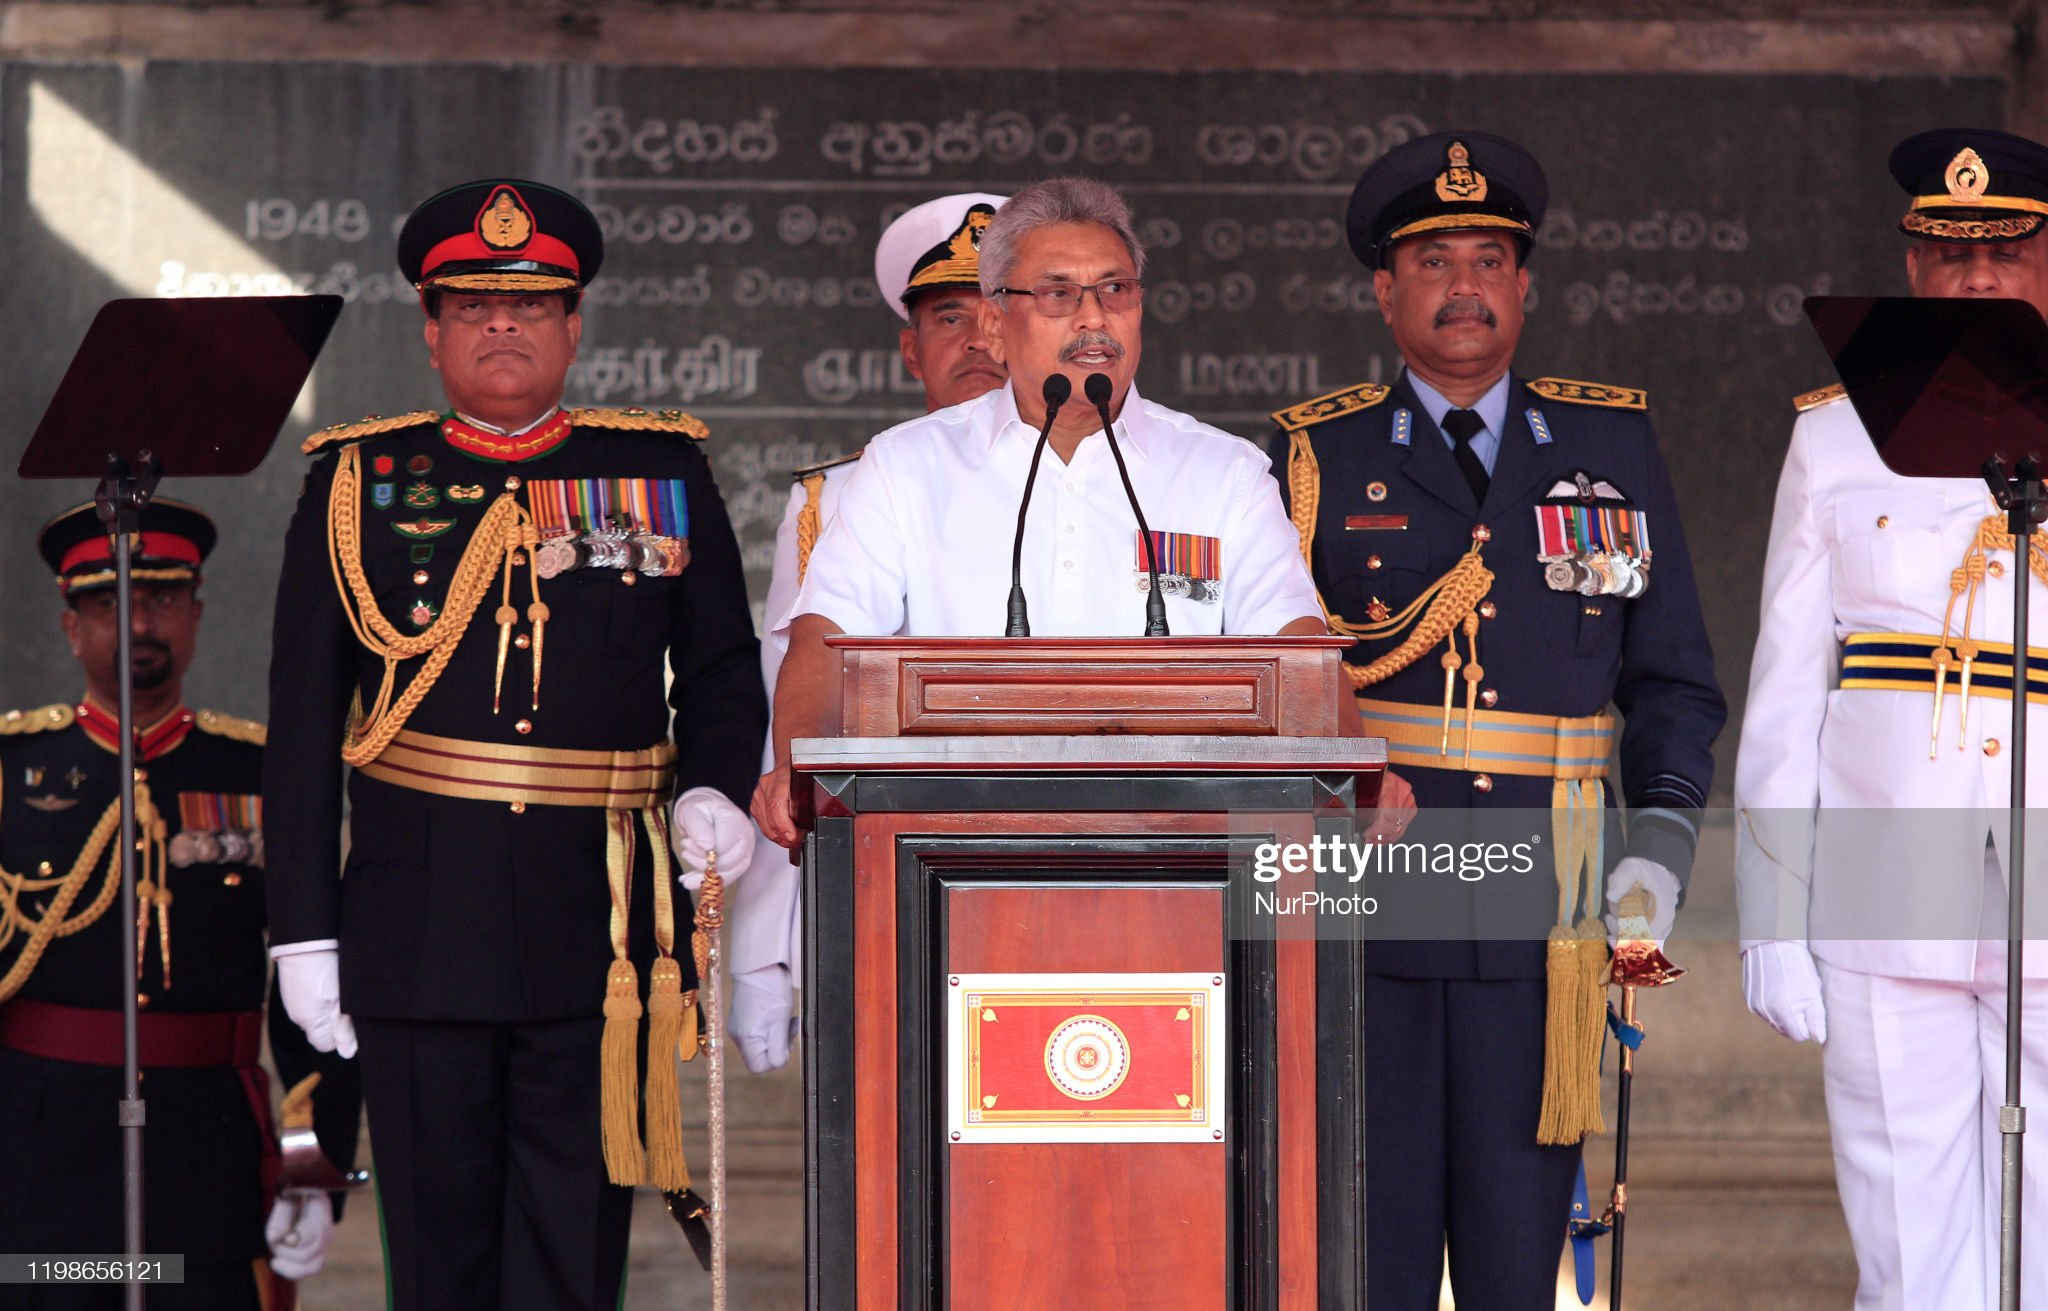 72nd Independence Day Celebrations In Sri Lanka : News Photo